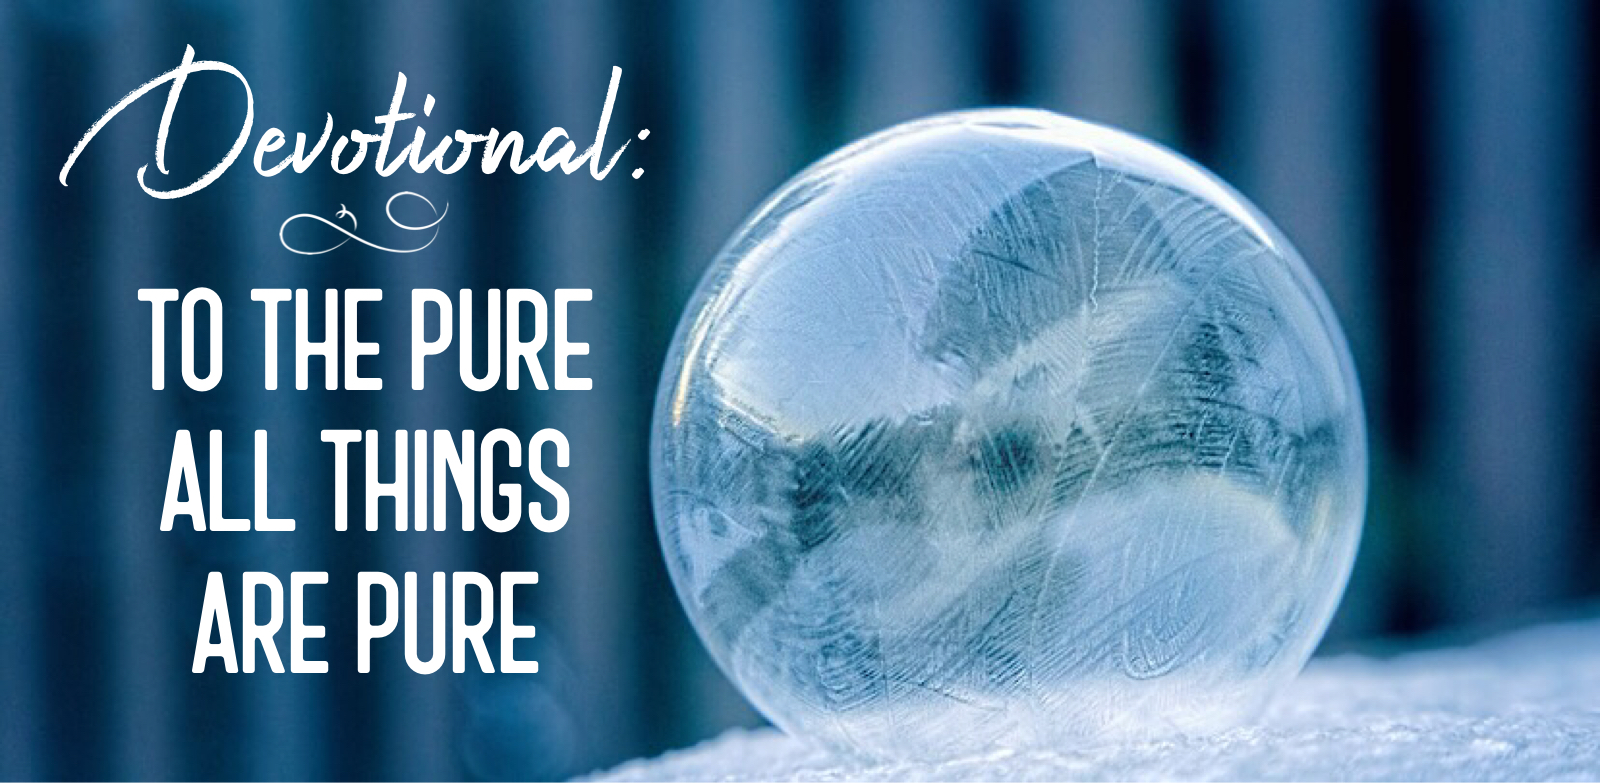 Devotional - To the Pure All Things are Pure